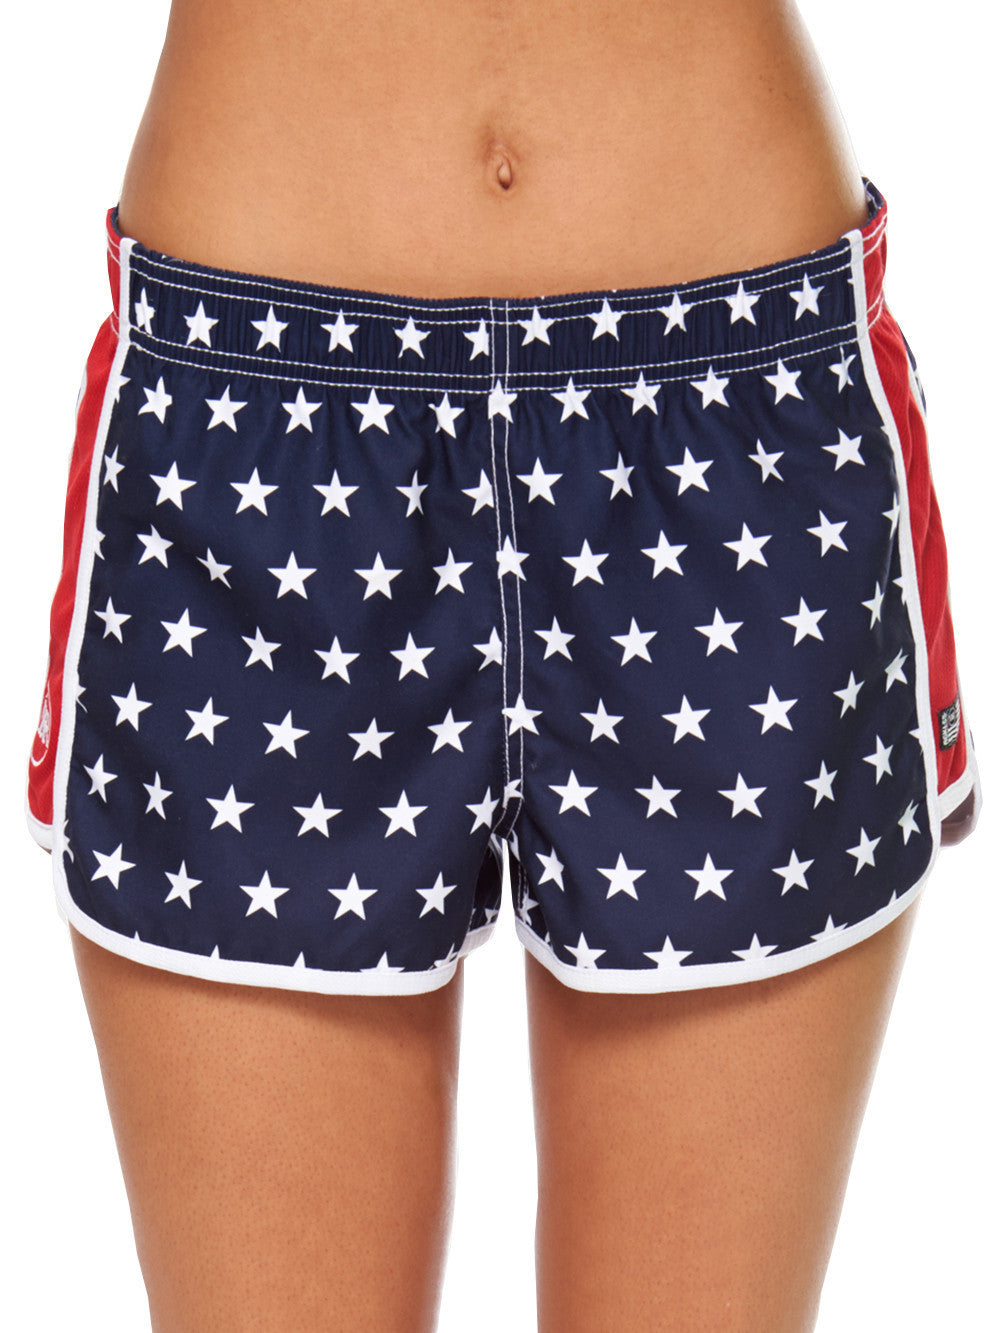 66c5b2e2f63f1 Reckless Girls Womens - Bottoms - Shorts Red White And Blue Shorts ...